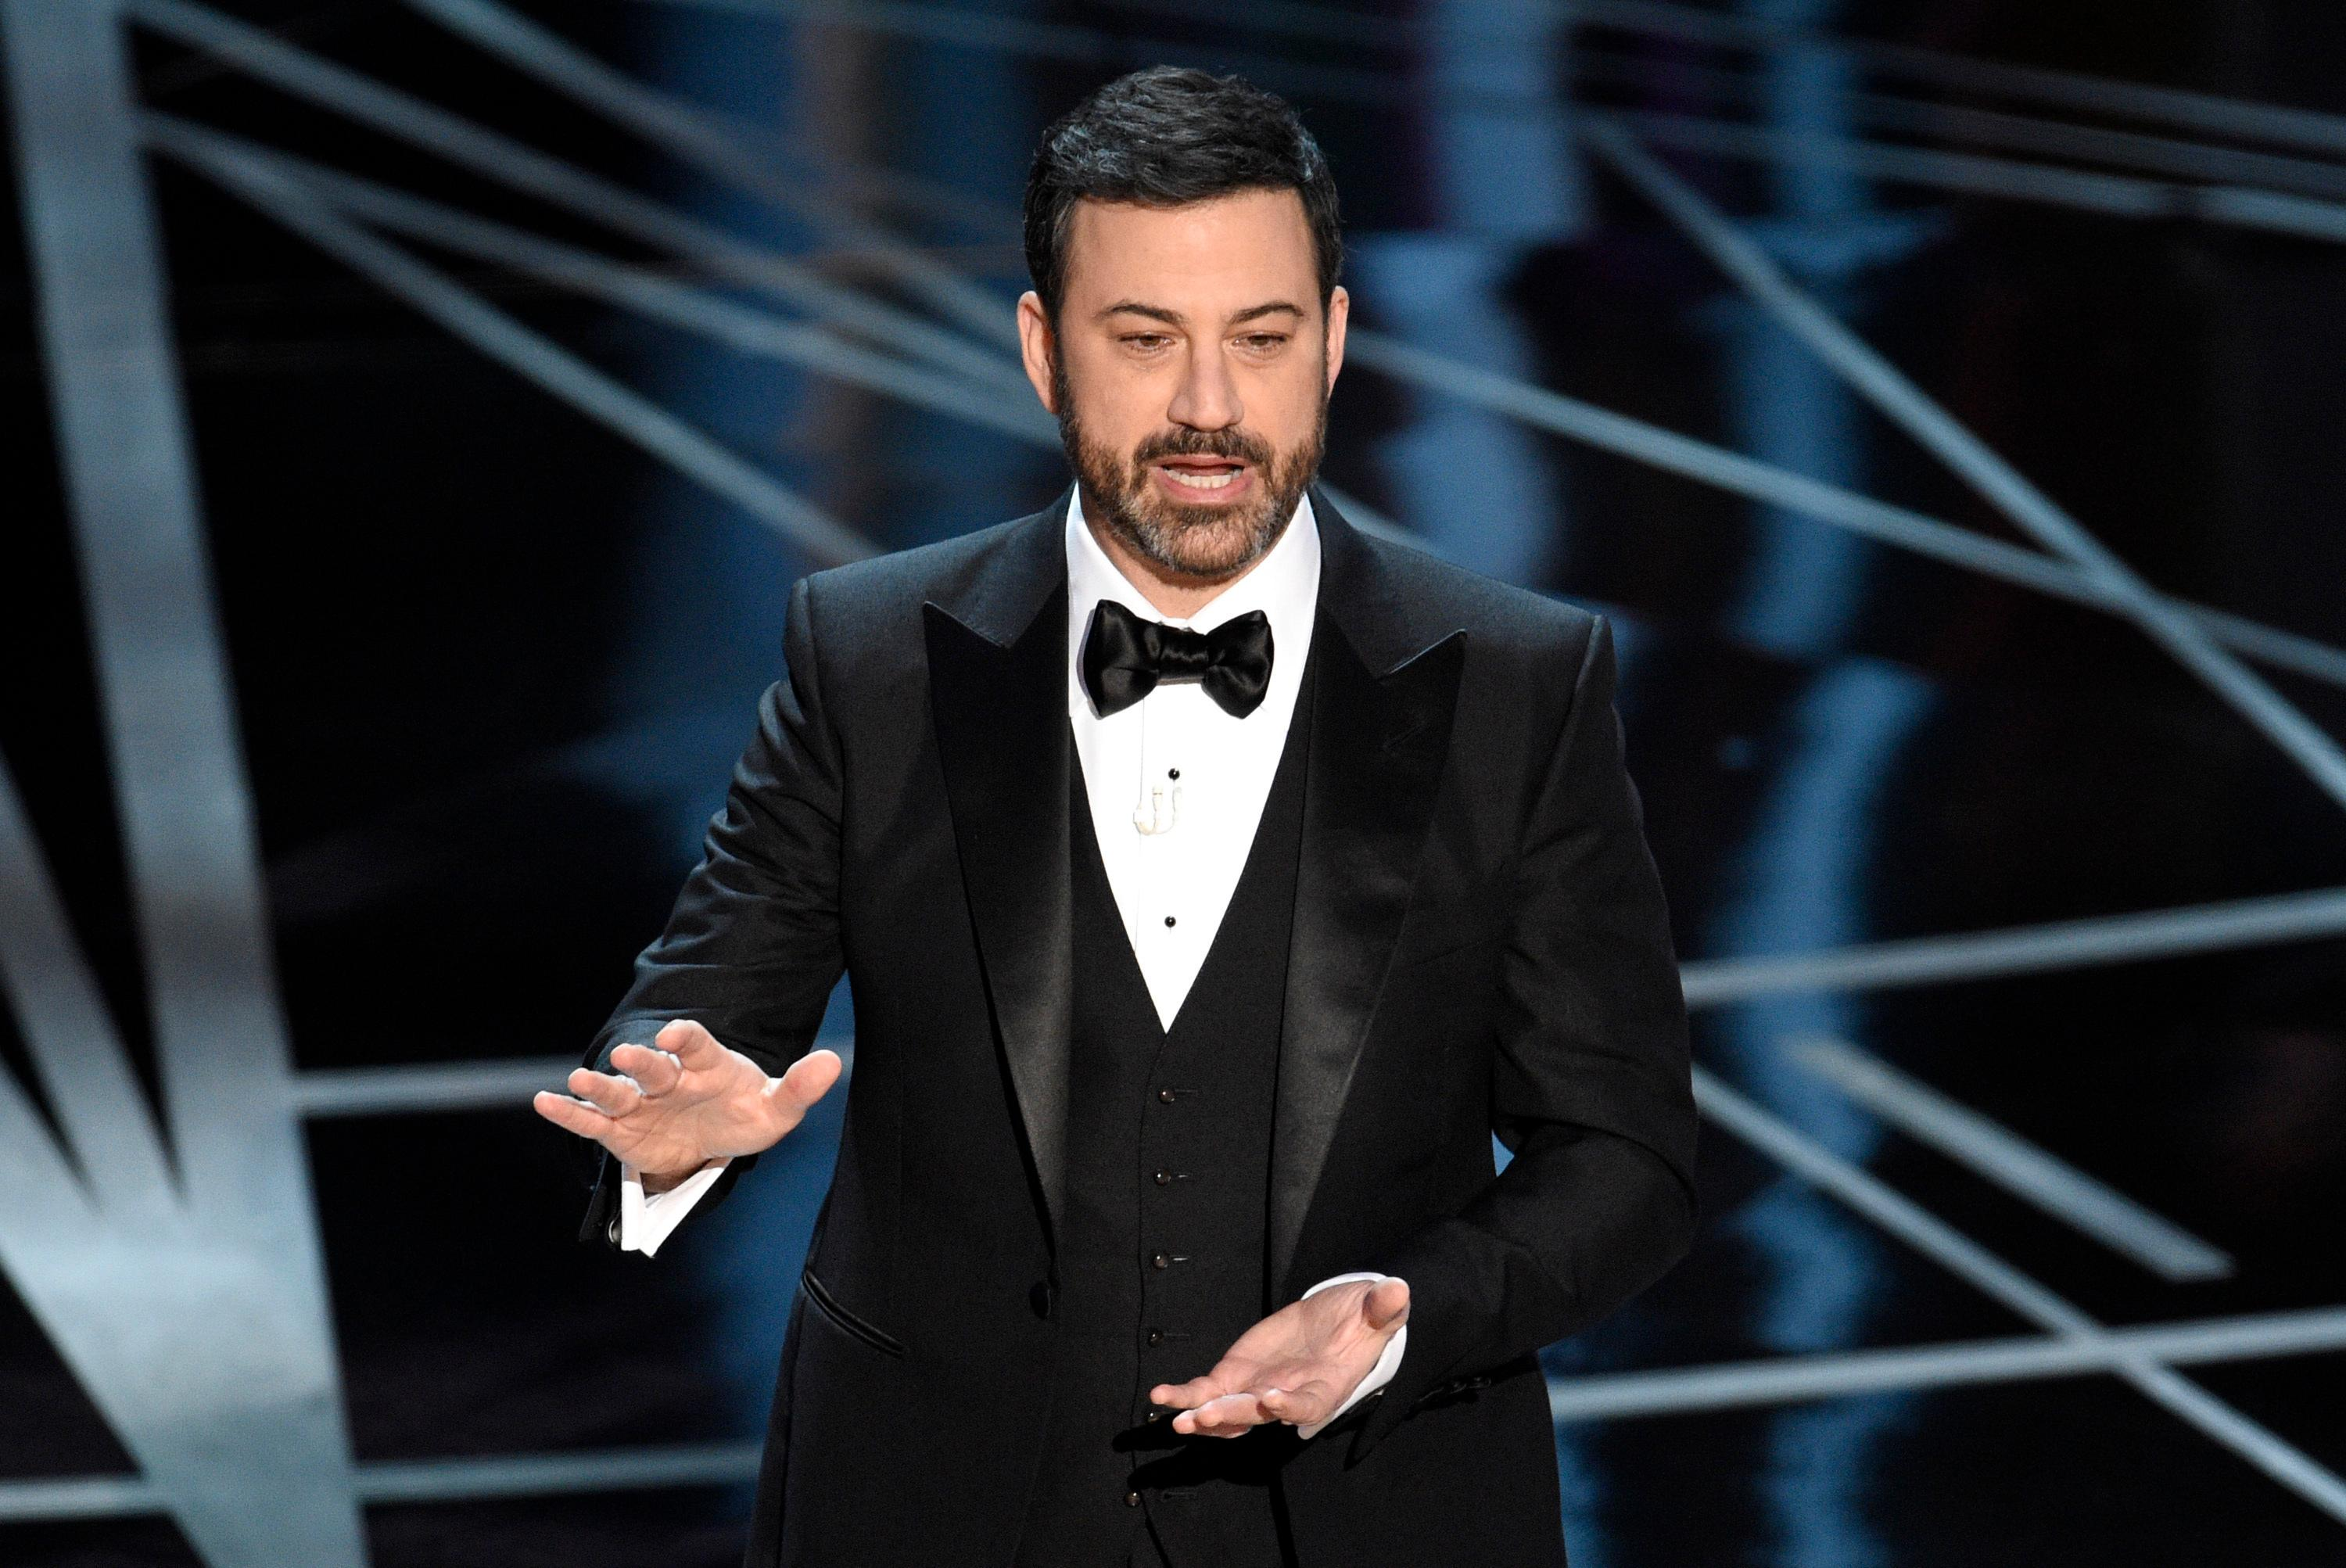 FILE - In this Feb. 26, 2017 file photo, host Jimmy Kimmel appears at the Oscars in Los Angeles. Late-night comics decried the Las Vegas mass shooting as a confoundingly repetitive American tragedy, with Jimmy Kimmel and Trevor Noah lashing out at politicians who oppose gun control. They spoke out on Monday, Oct. 2, the day after the worst shooting in modern U.S. history. (Photo by Chris Pizzello/Invision/AP, File)